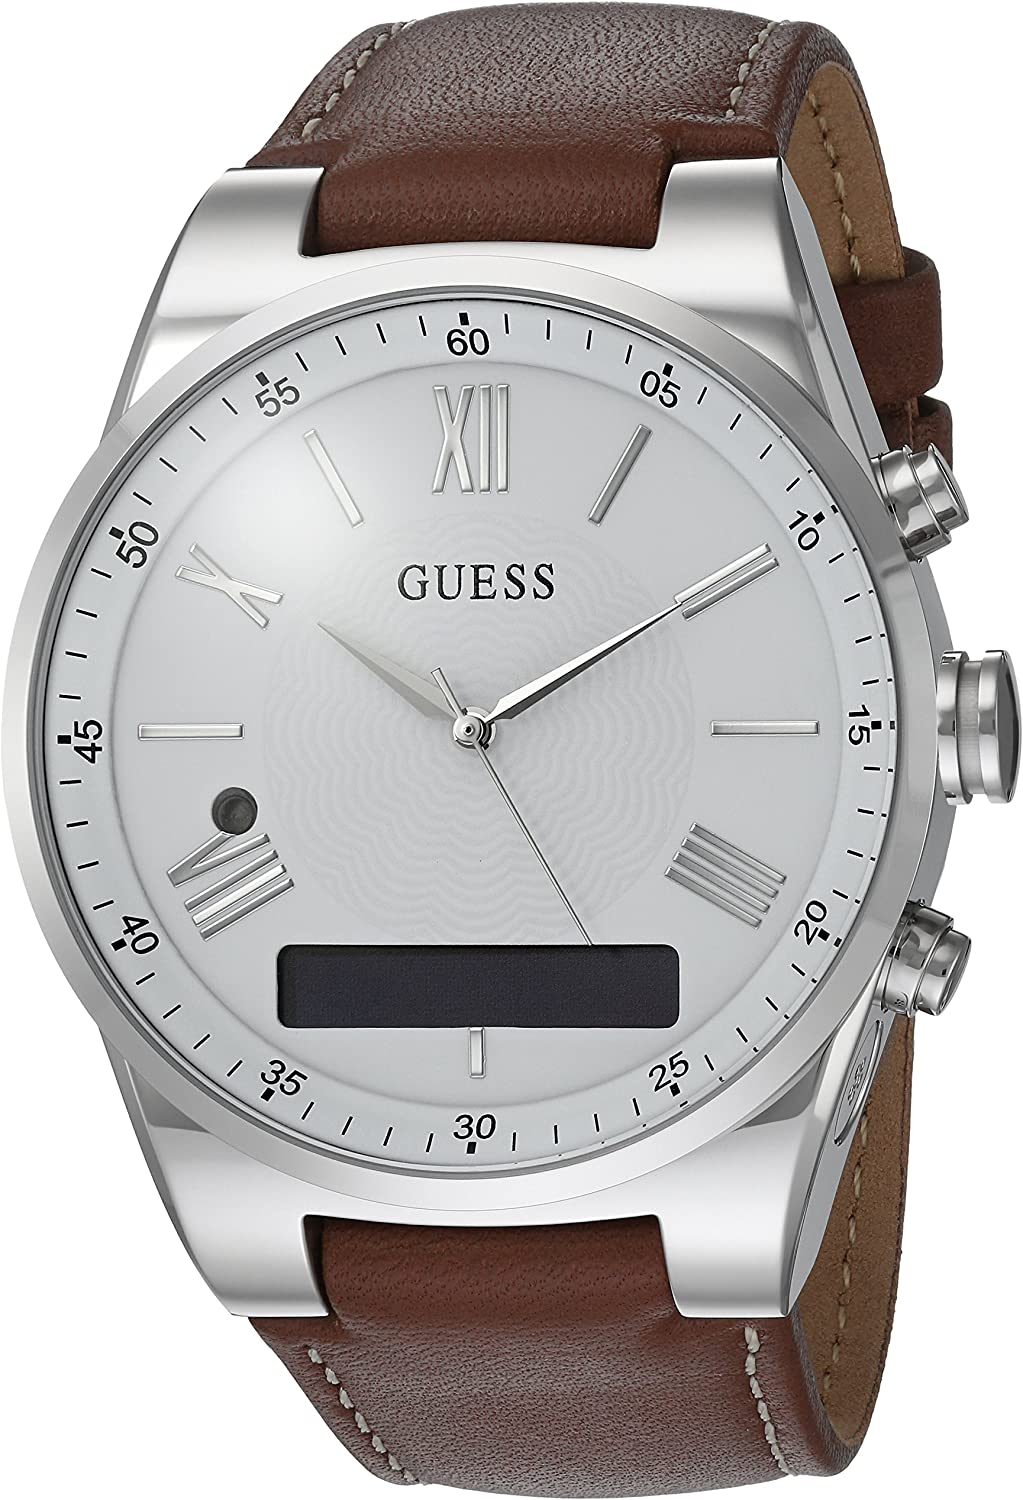 GUESS Men's Stainless Steel Connect Smart Watch - Amazon Alexa, iOS and Android Compatible, Color: Brown (Model: C0002MB1)